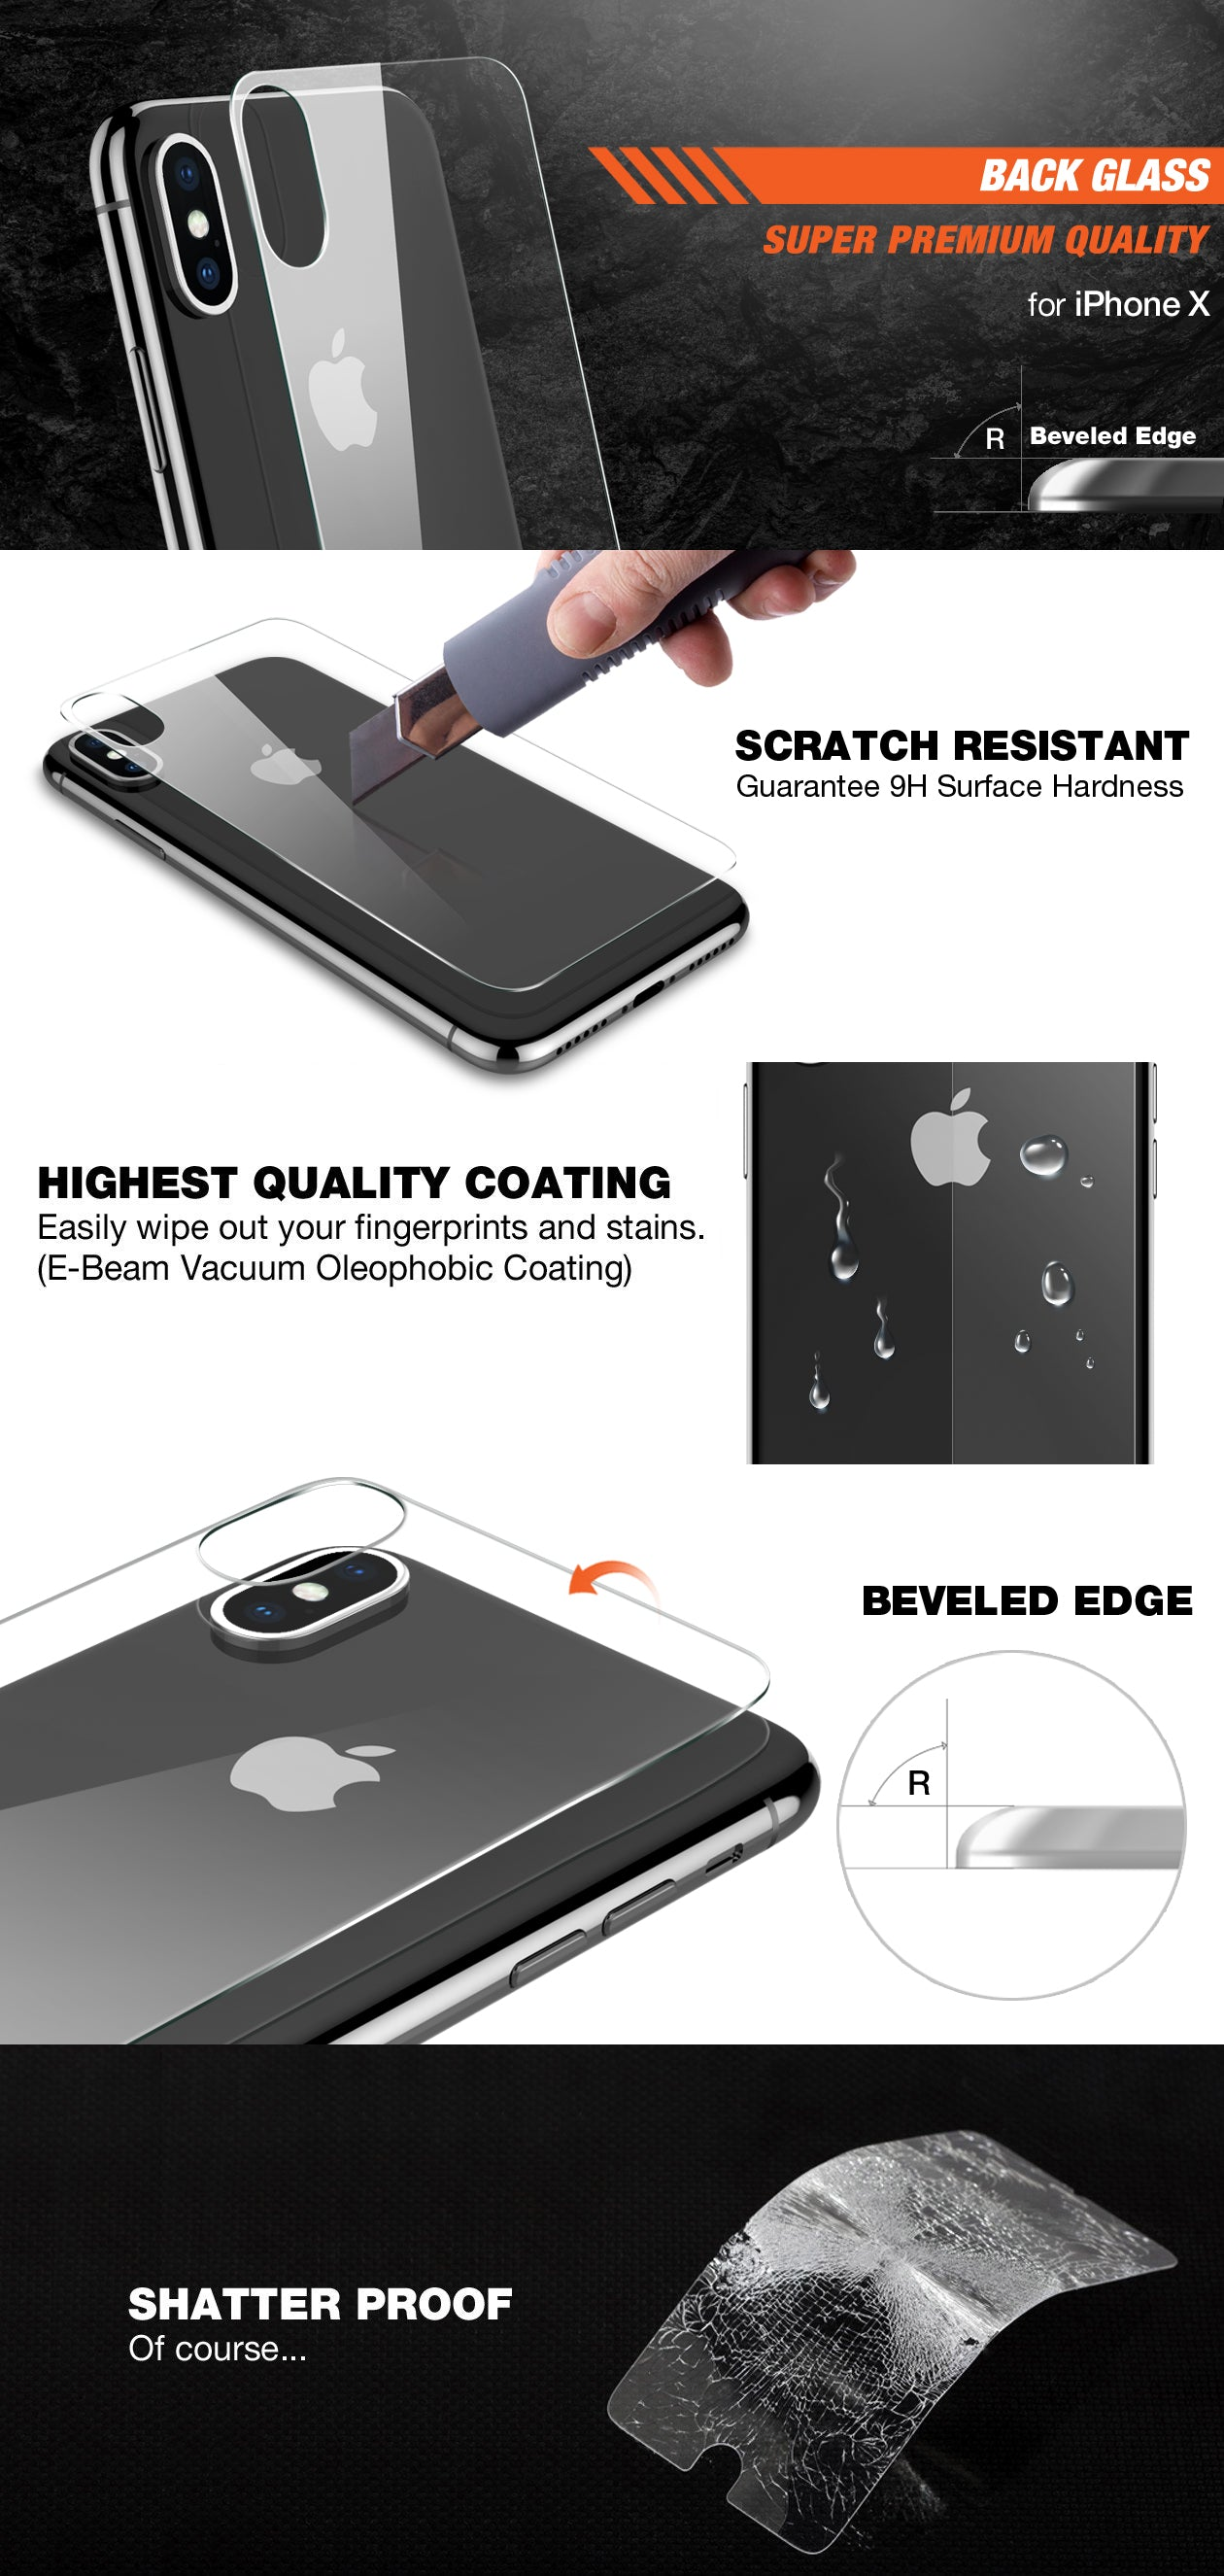 Patchworks ITG Back Glass for iPhone X